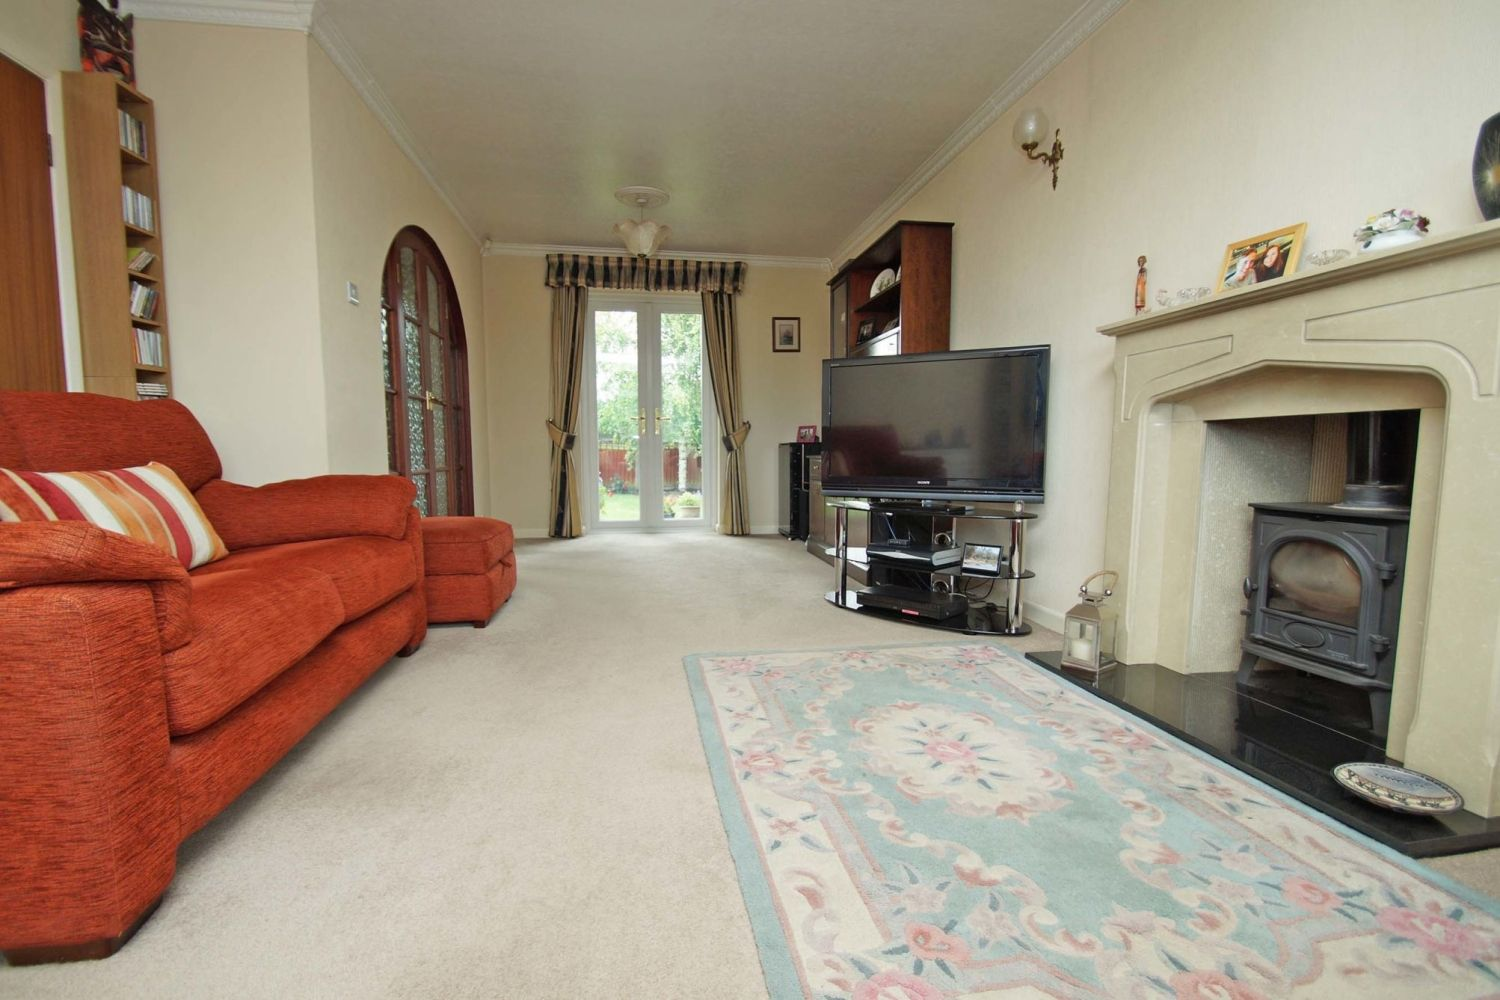 4 bed detached for sale in St. Richards Close, Wychbold 4